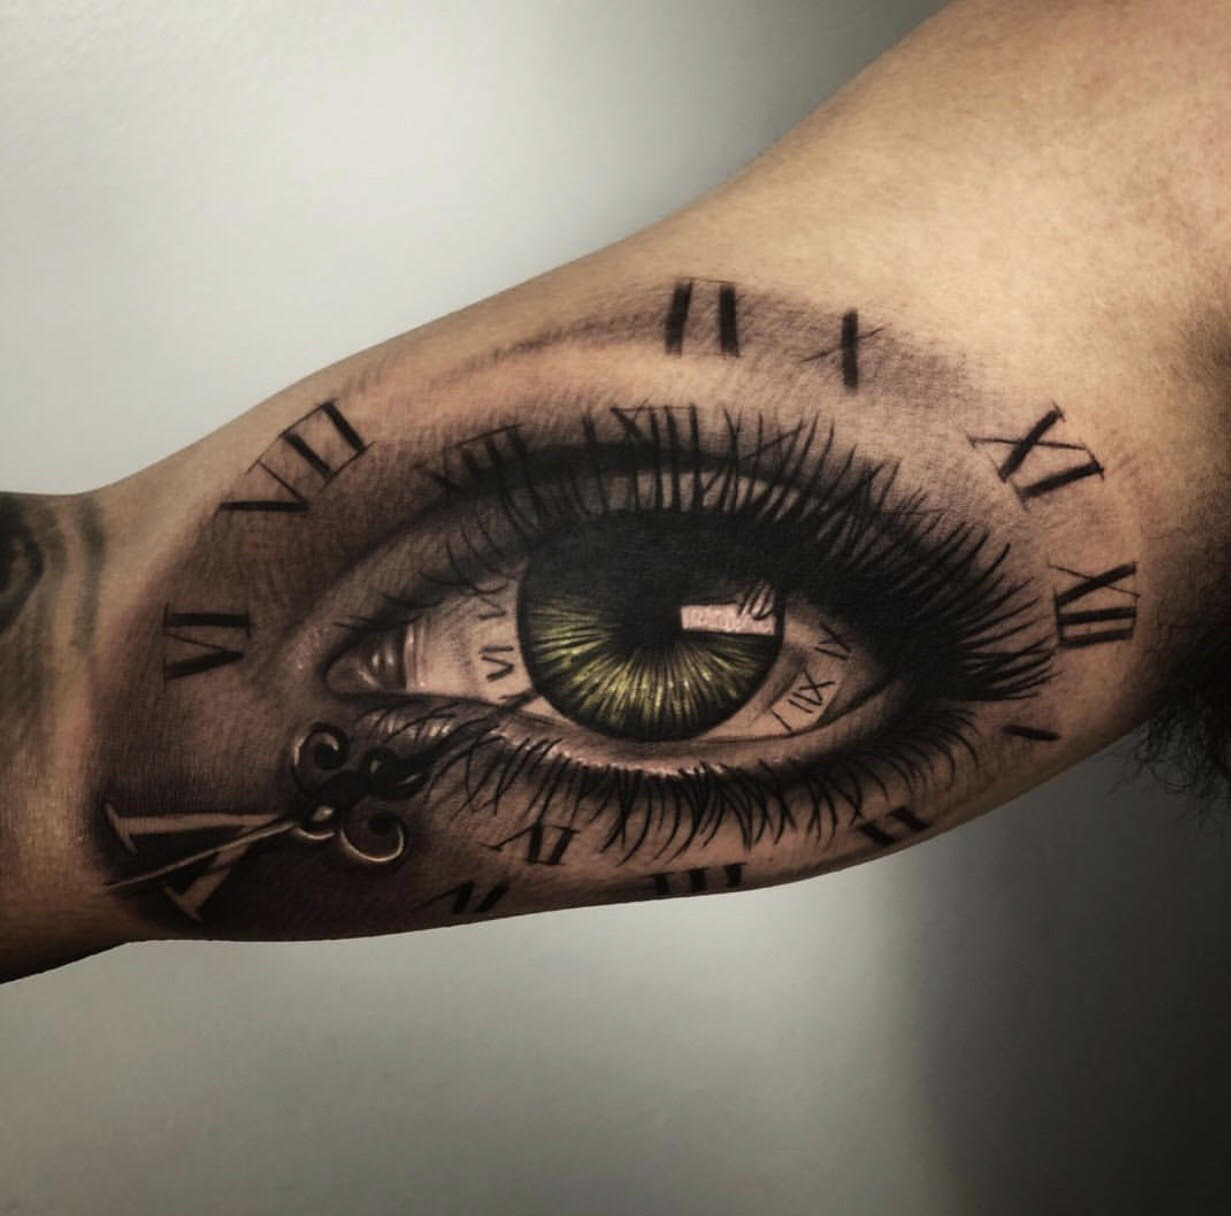 Custom-black-and-grey- and Green Eye with Clock  tattoo-by-+Bryan+Alfaro+at-certified-customs-denver-co-6.jpg